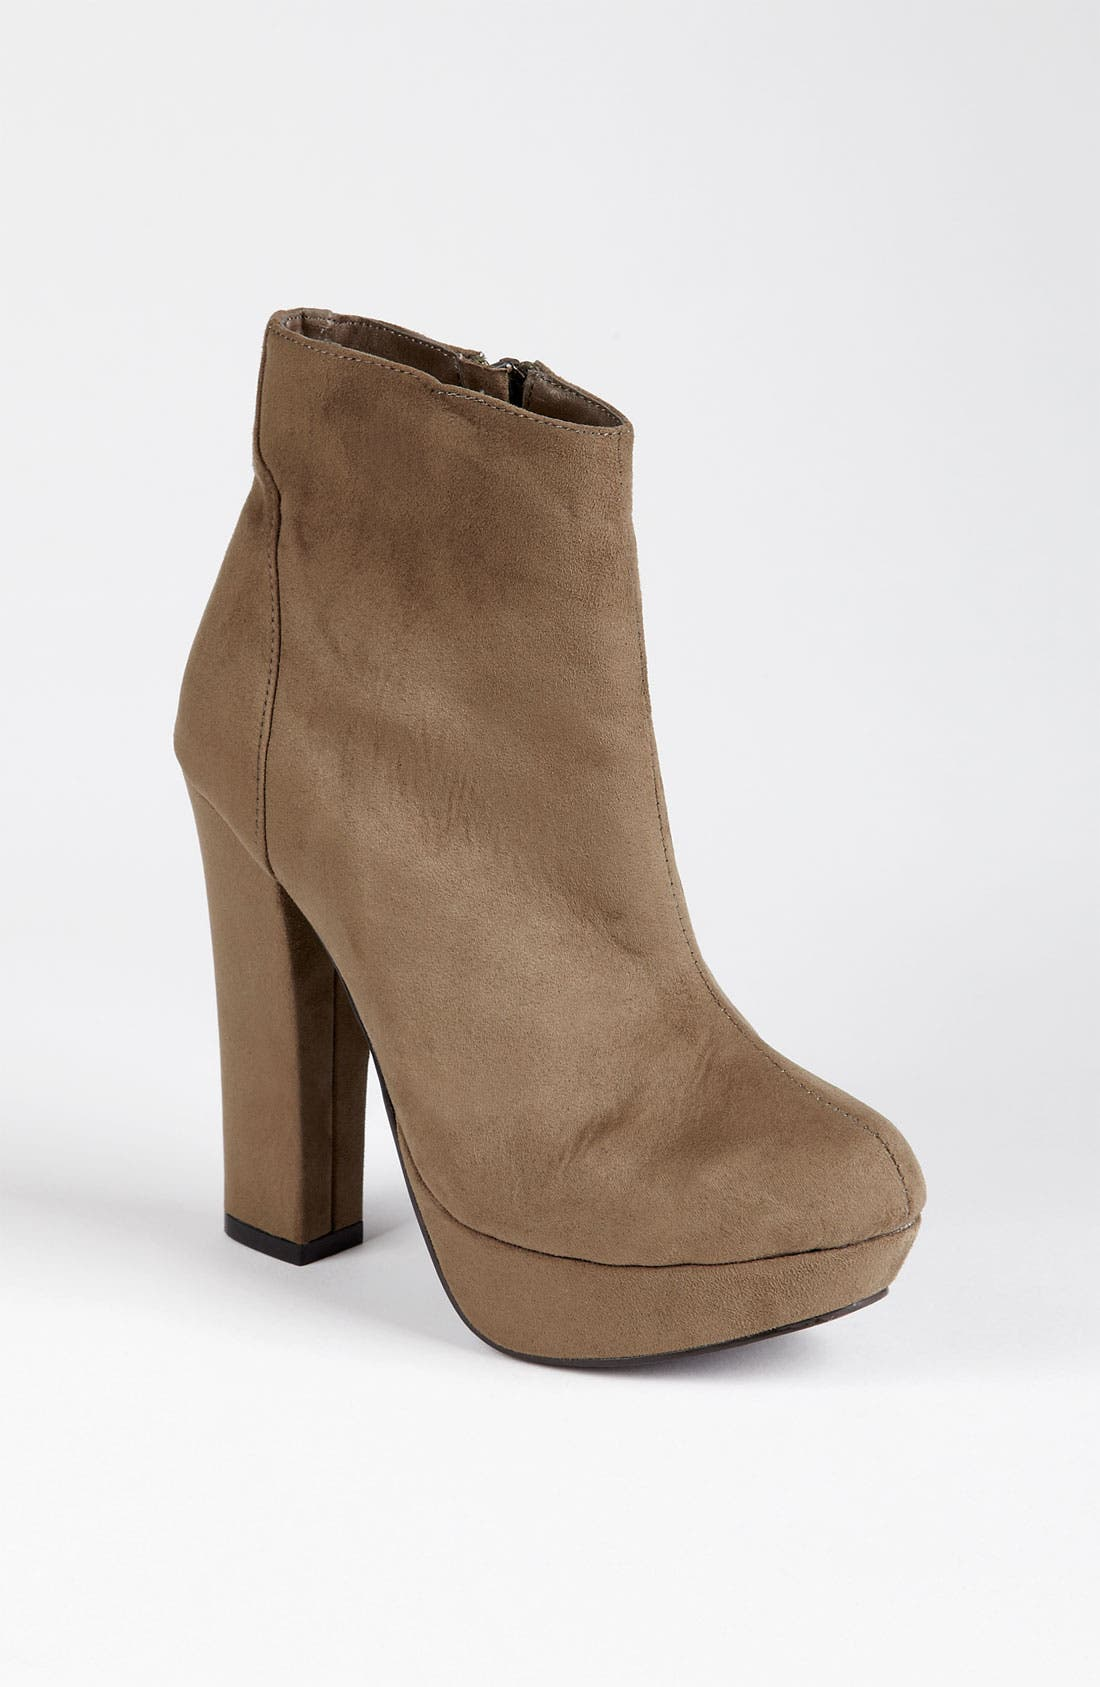 Alternate Image 1 Selected - Sole Society 'Josslyn' Platform Bootie